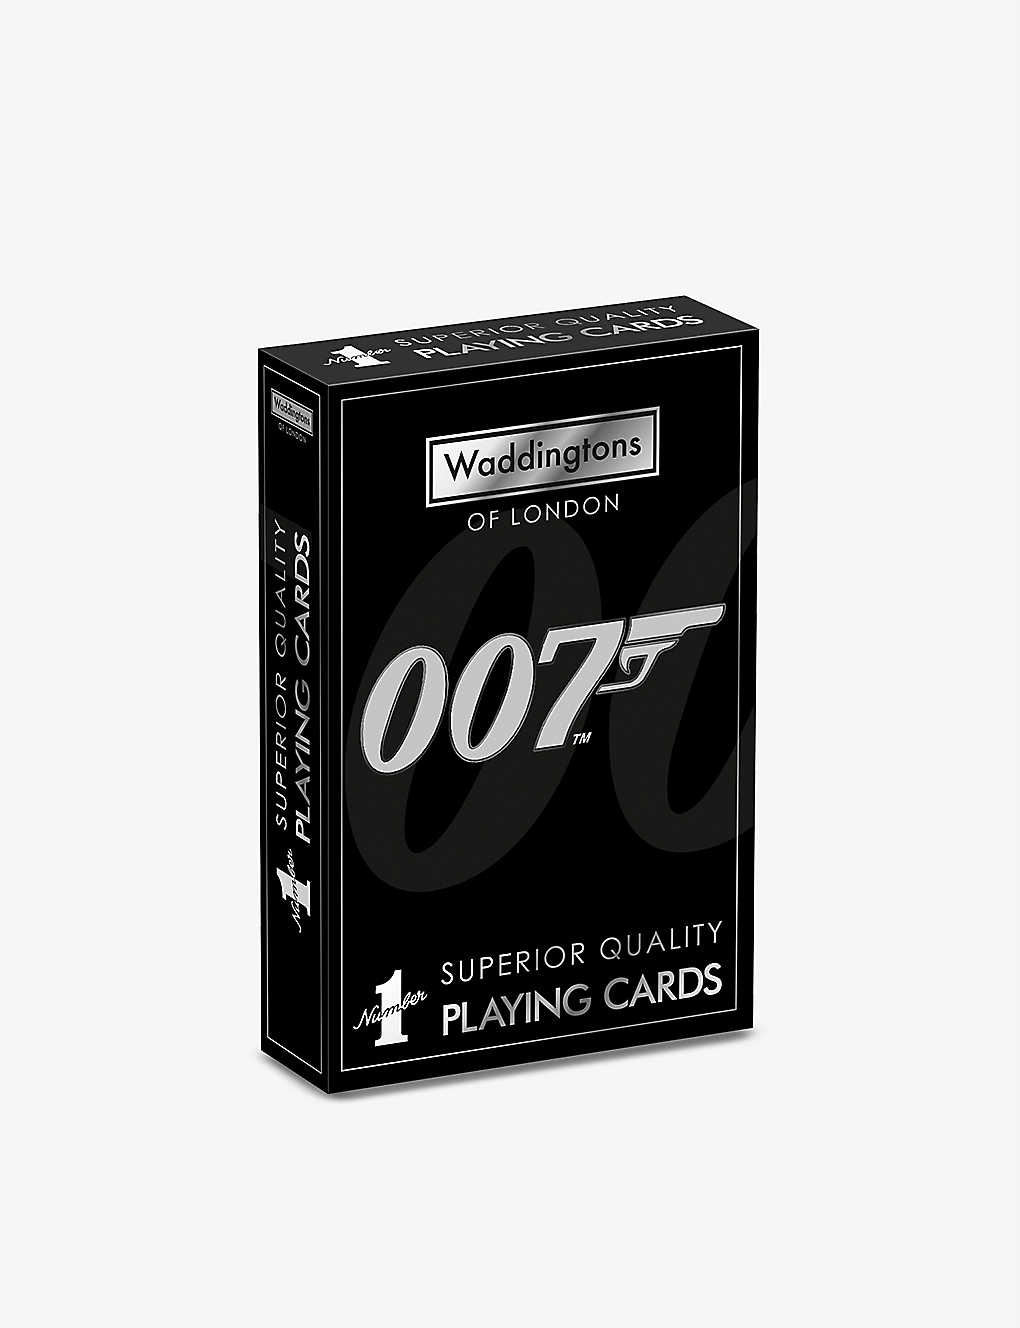 WINNING MOVES: James Bond 007 Edition playing cards